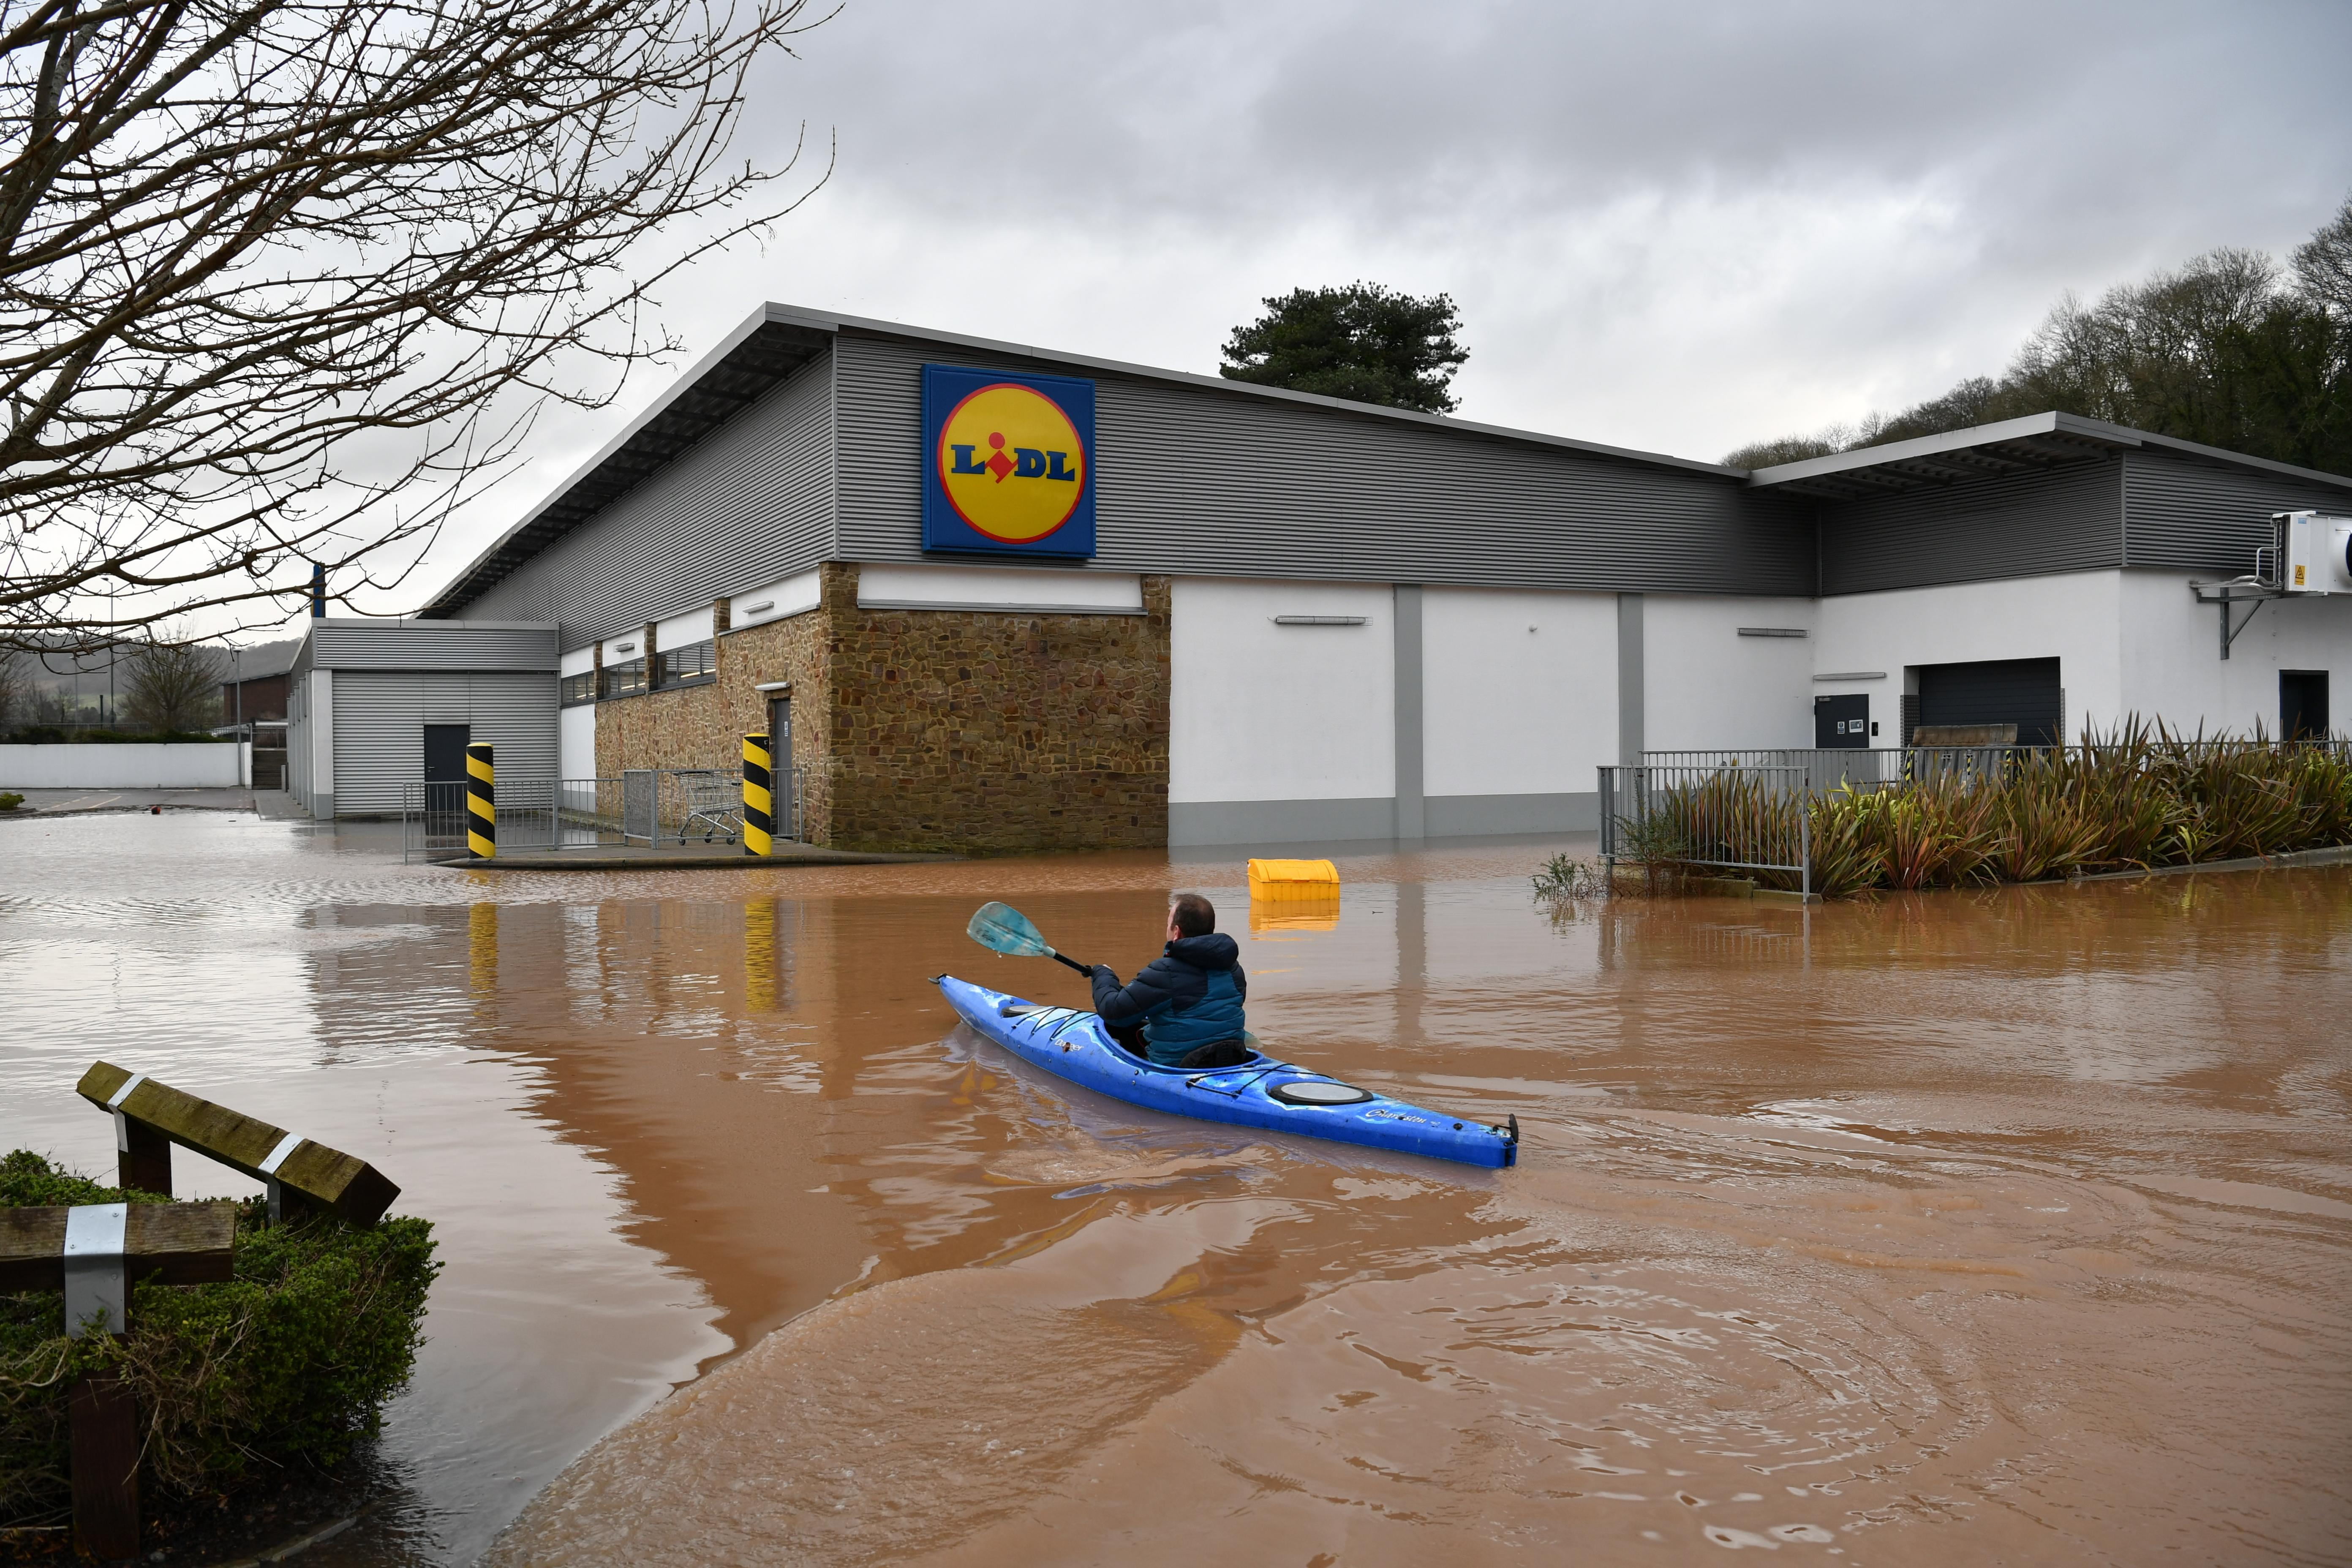 A canoeist makes their way towards Lidl in Monmouth, in the aftermath of Storm Dennis. (Photo by Ben Birchall/PA Images via Getty Images)